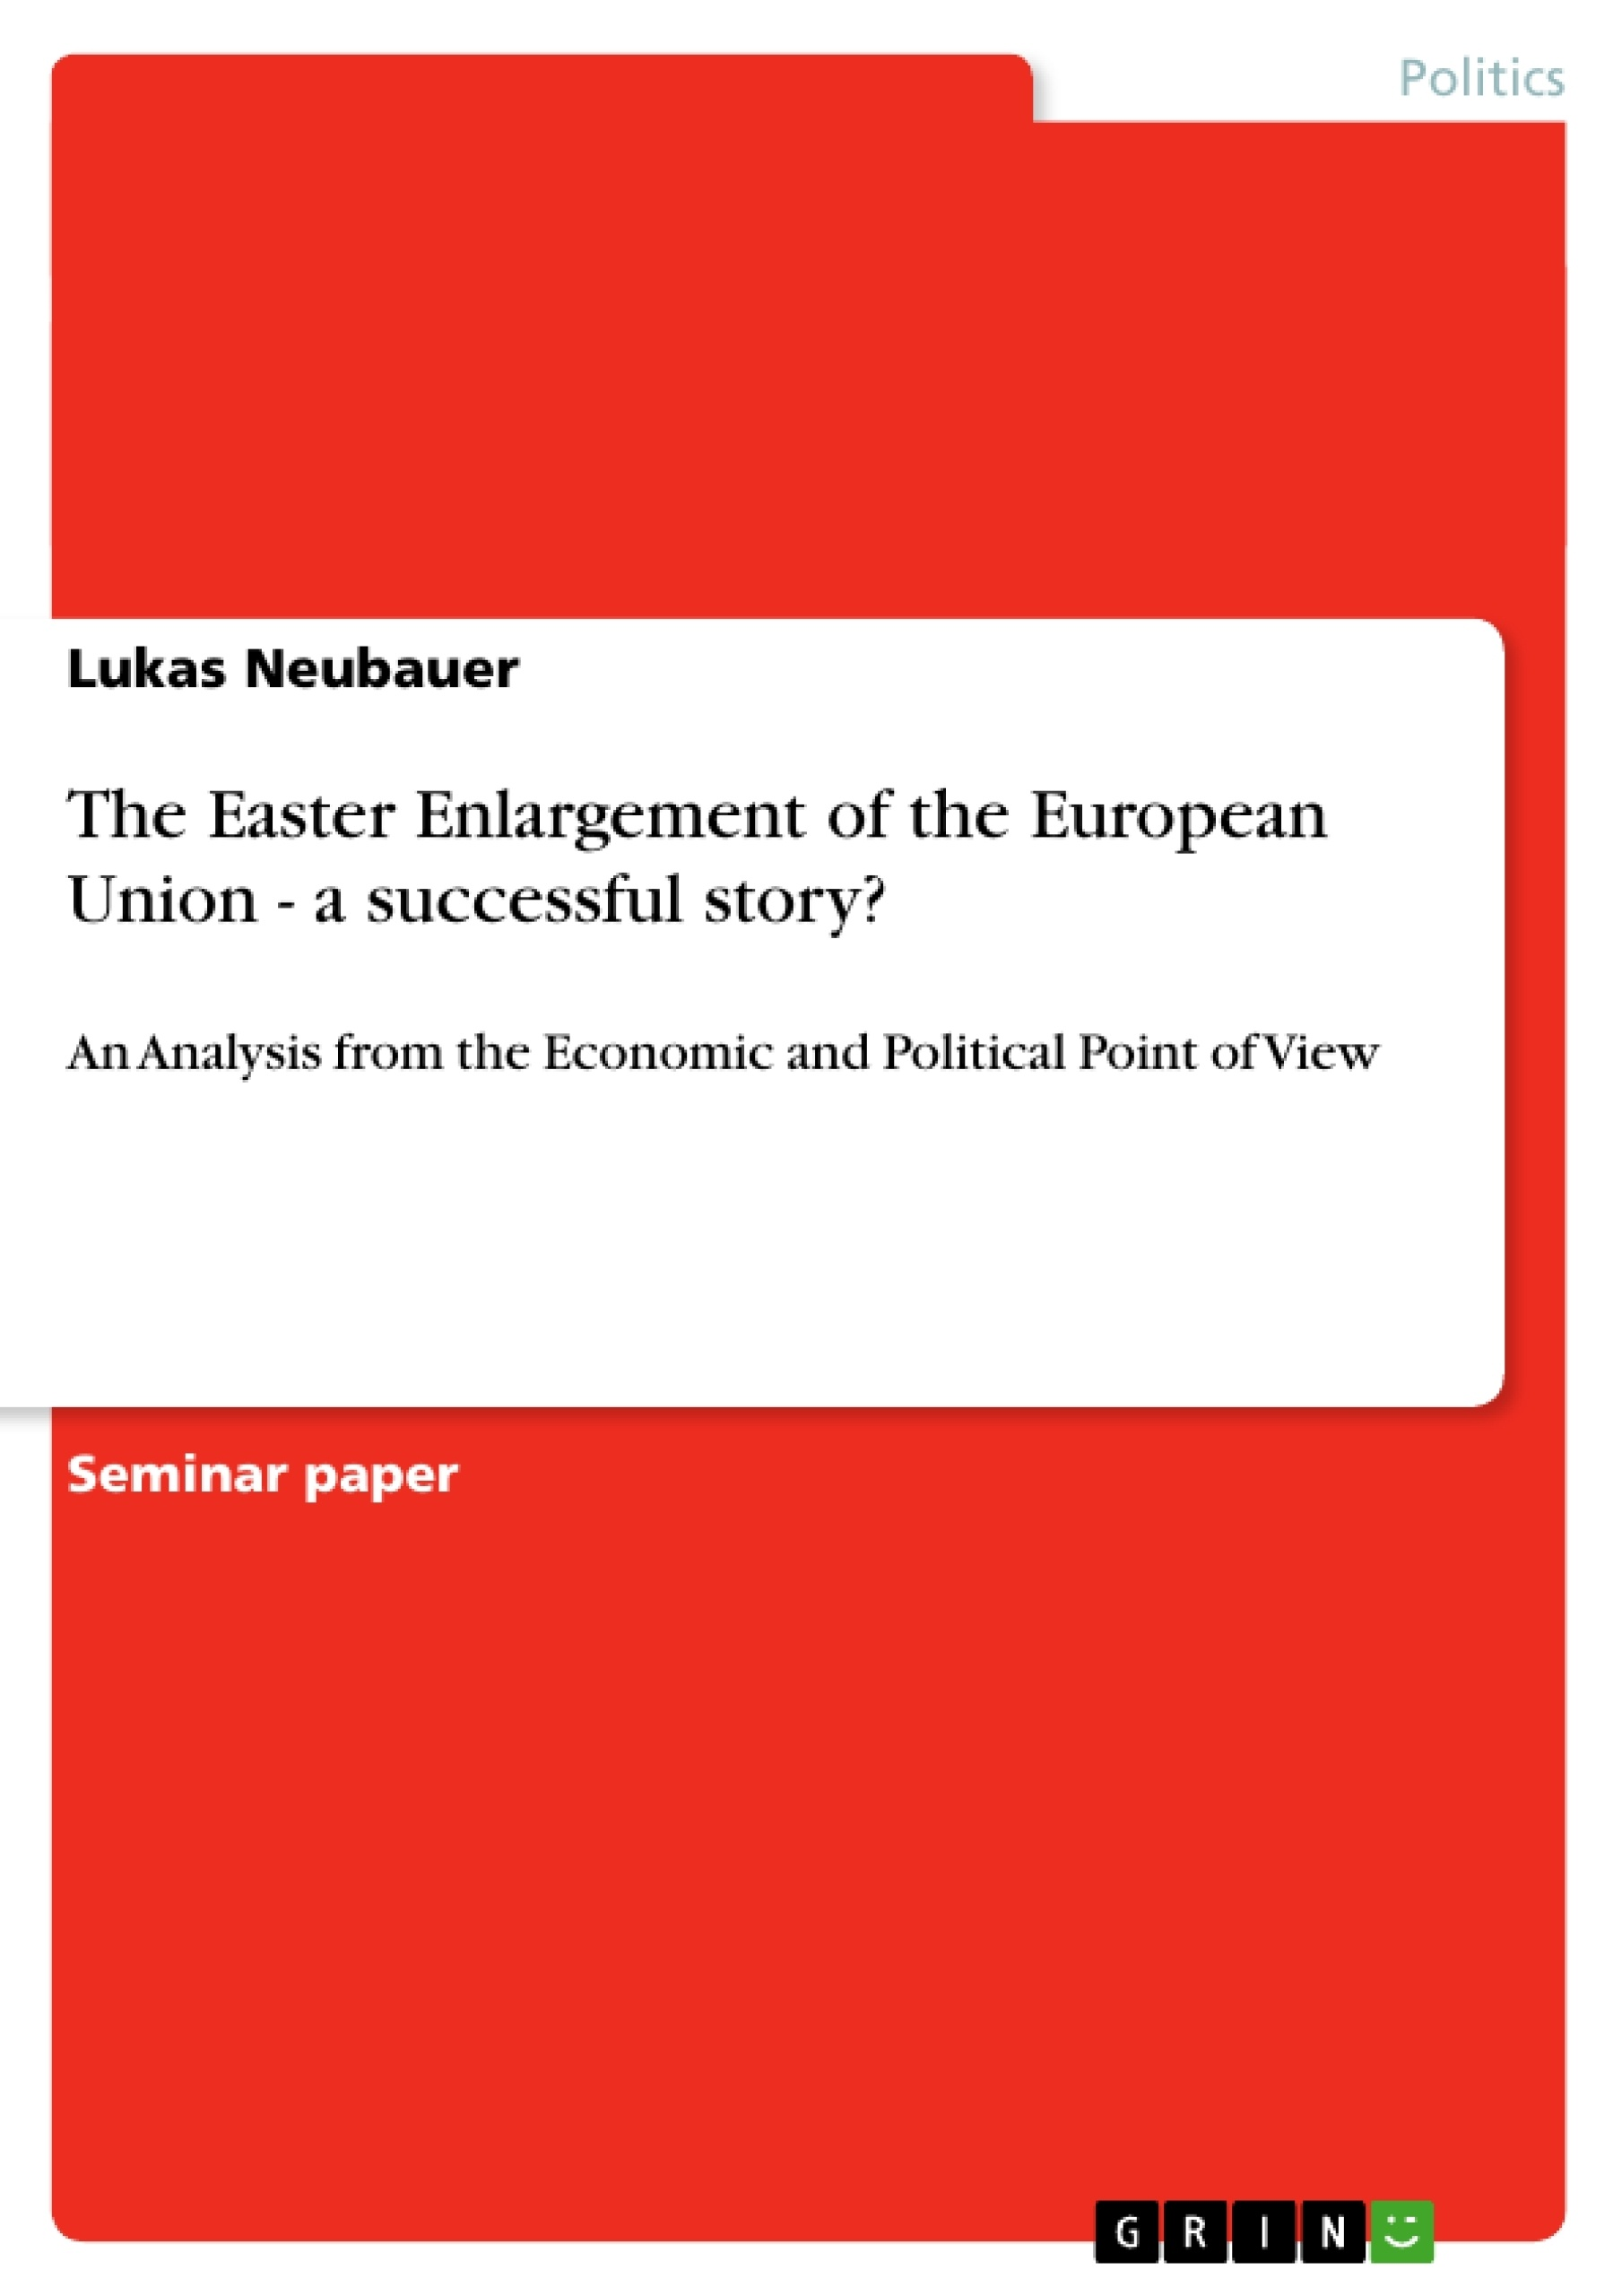 Title: The Easter Enlargement of the European Union - a successful story?